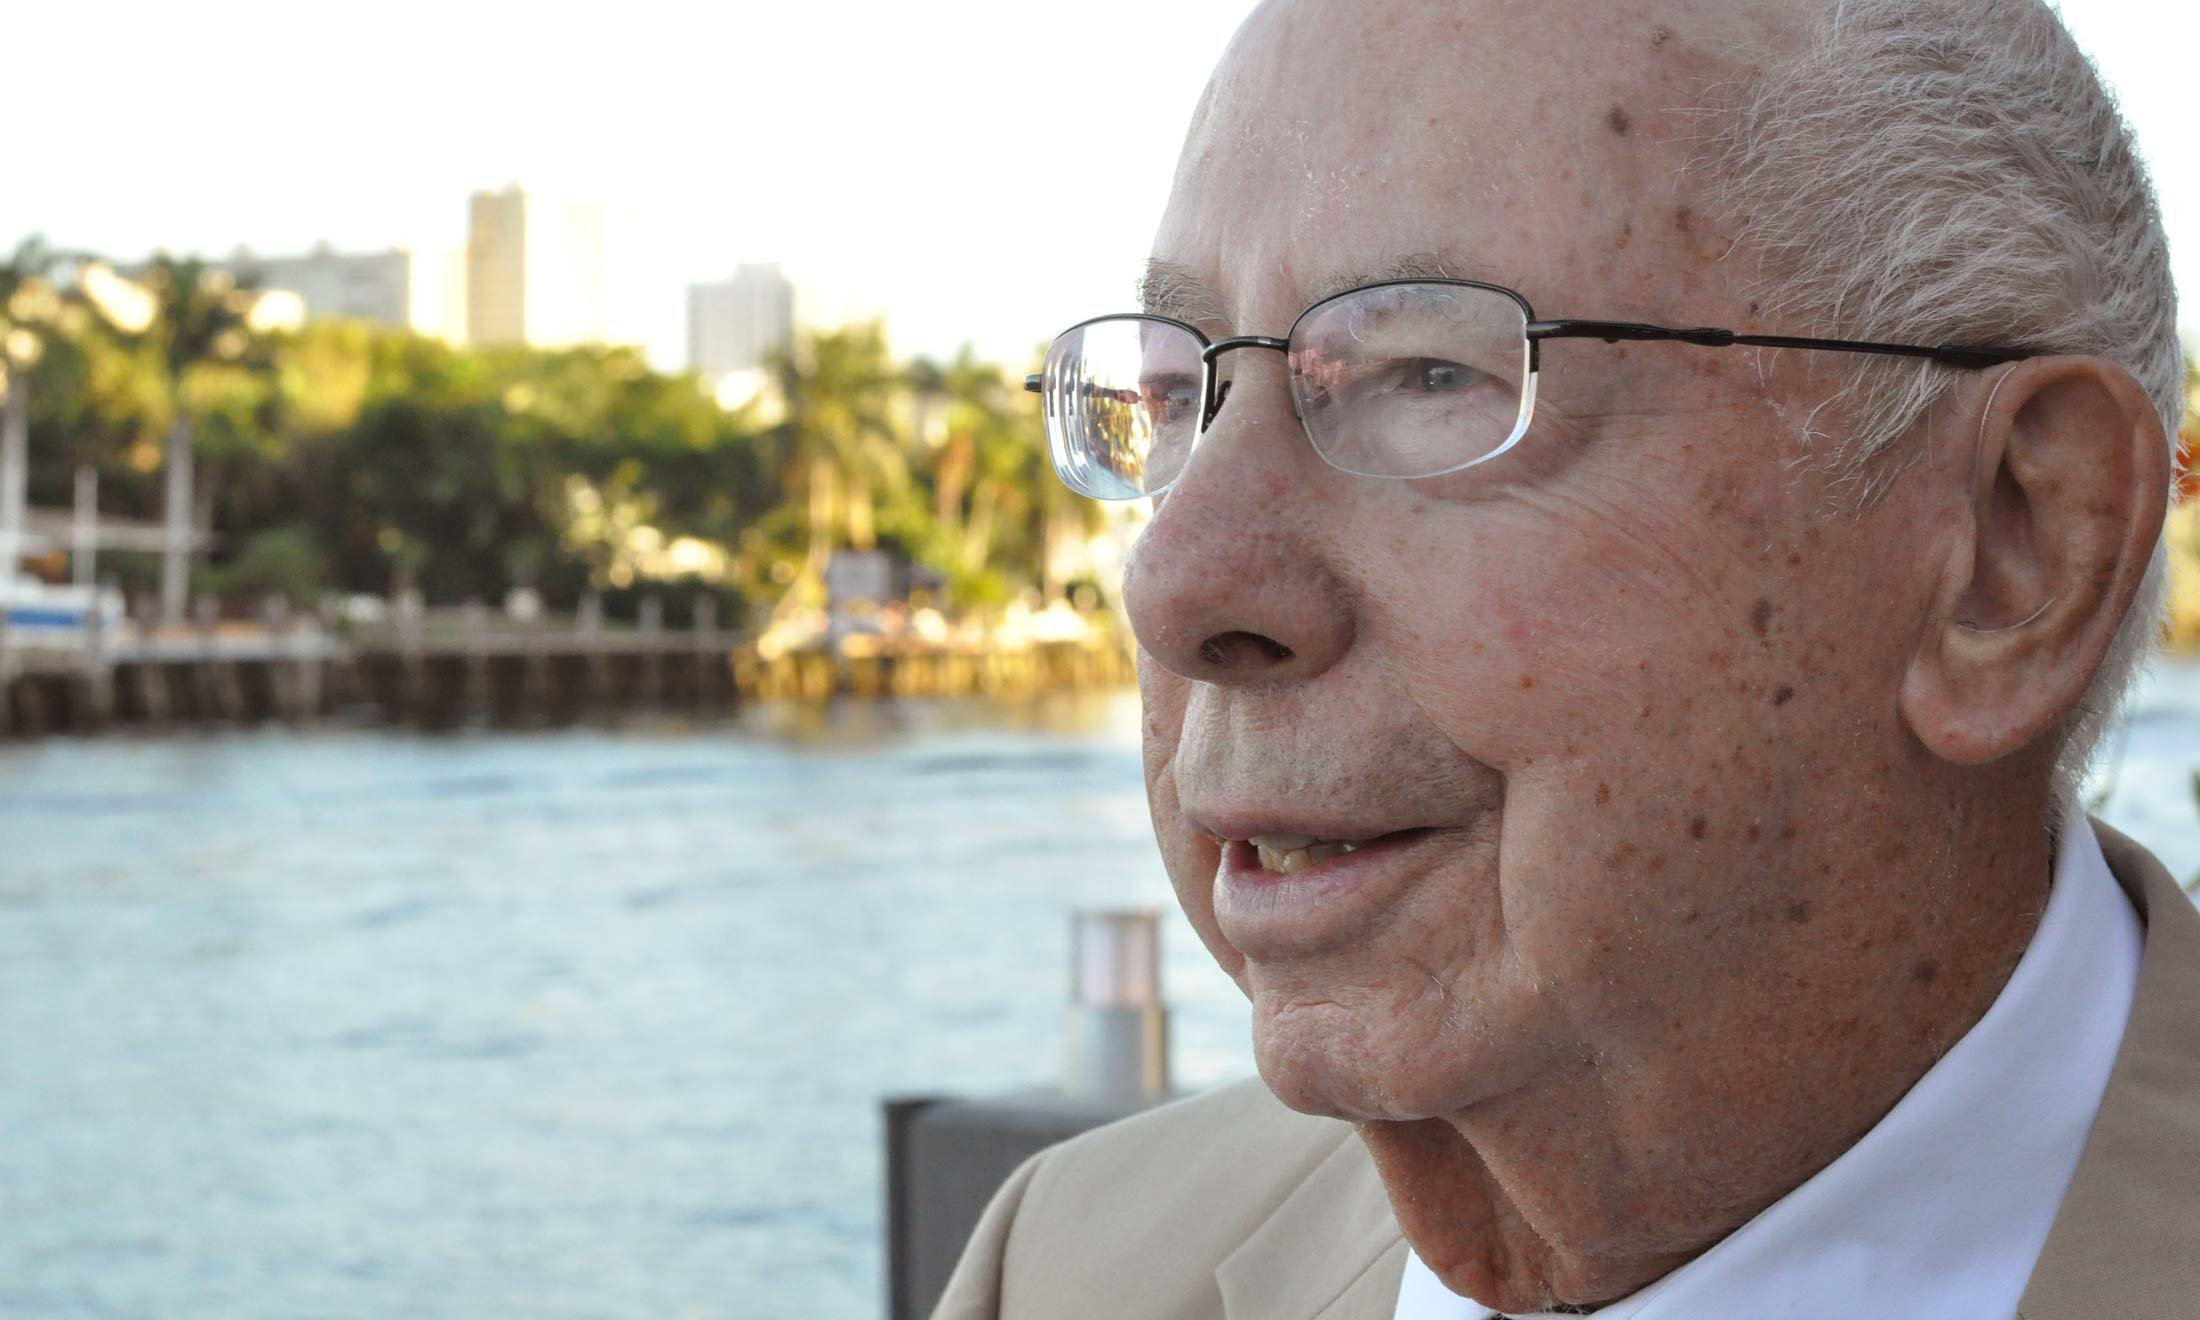 Retired Oakland University Professor Emeritus William Schwab in Fort Lauderdale, Florida. Close up of his face, standing on a dock and looking out into the water